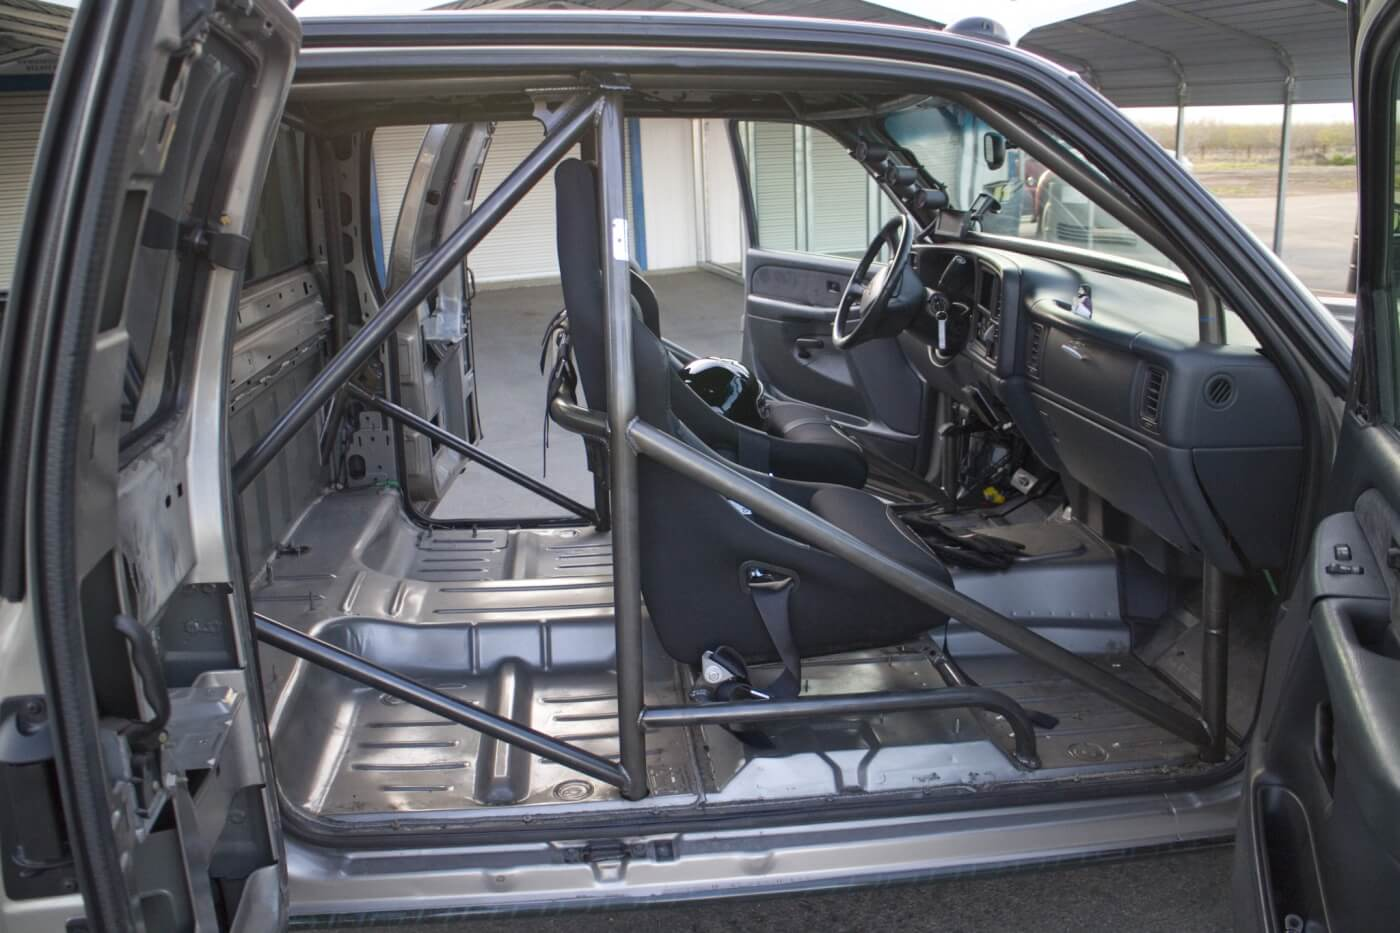 To lighten the truck, the interior was stripped out. A cage from Rollover Motorsports was installed for safety. The stock seats were replaced with a pair of Corbeau seats with 5-point belts.